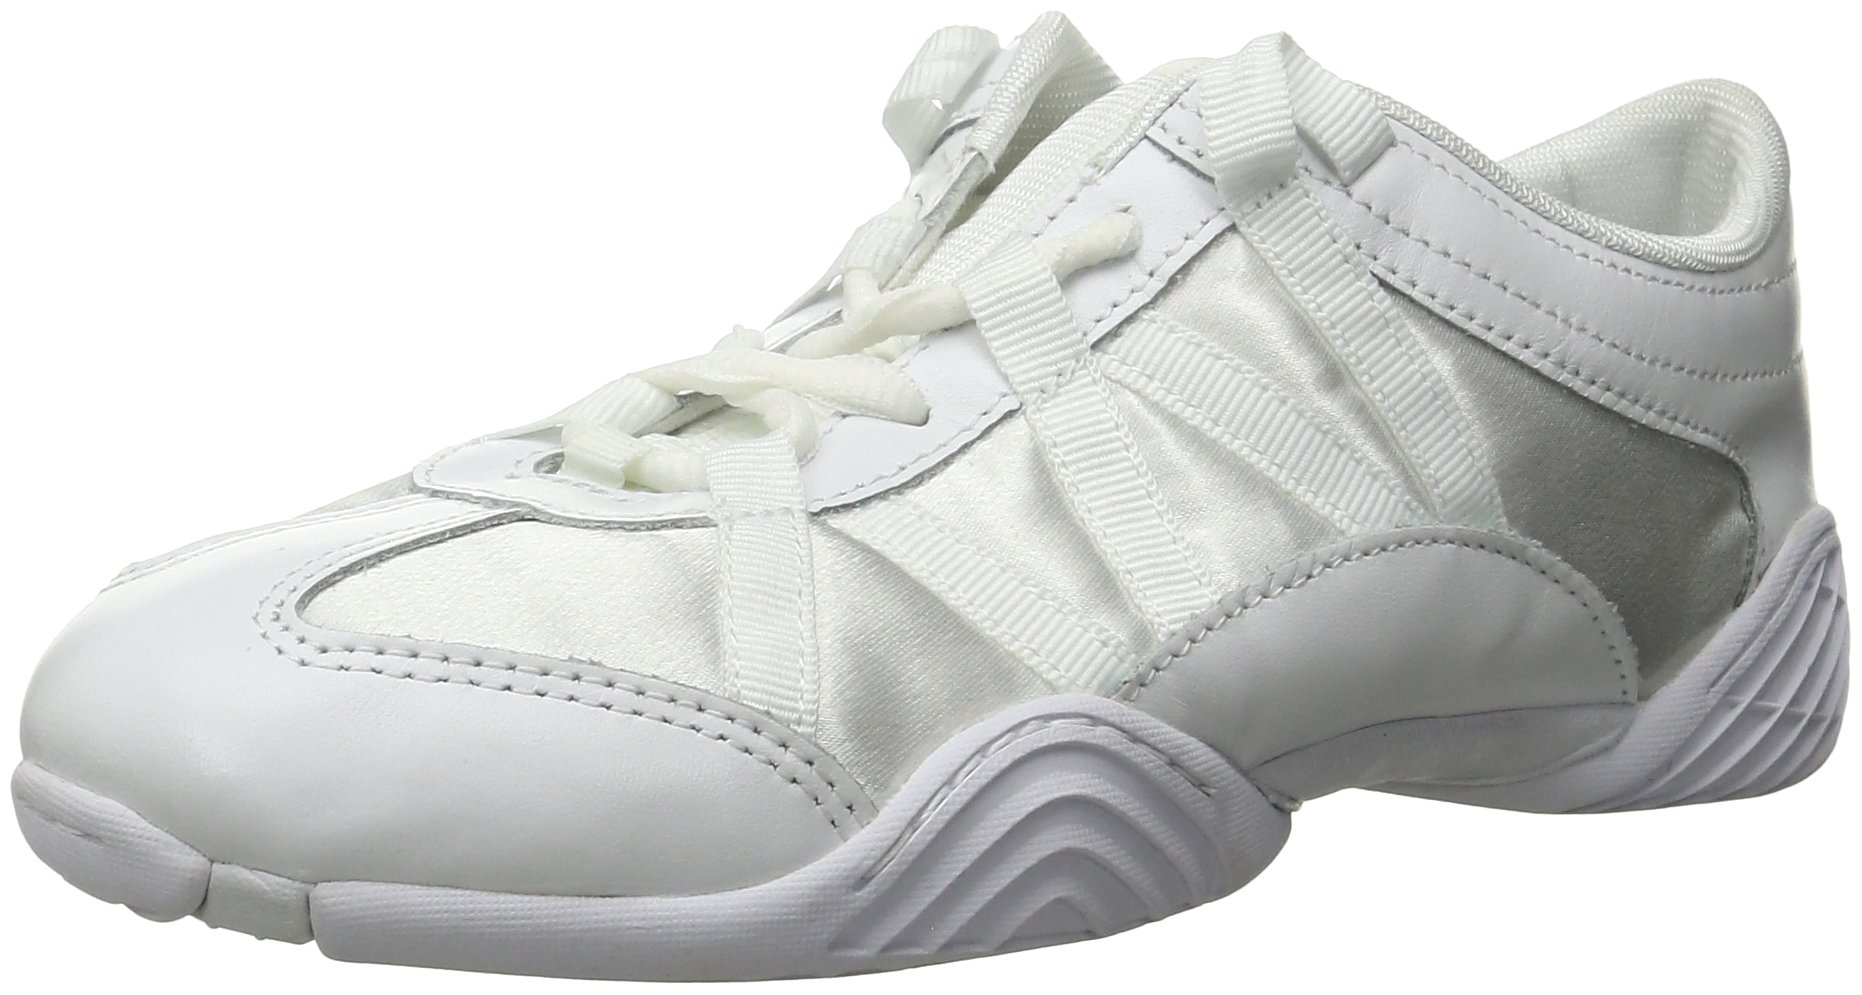 Nfinity Adult Evolution Cheer Shoes, White, 8.5 by Nfinity (Image #1)